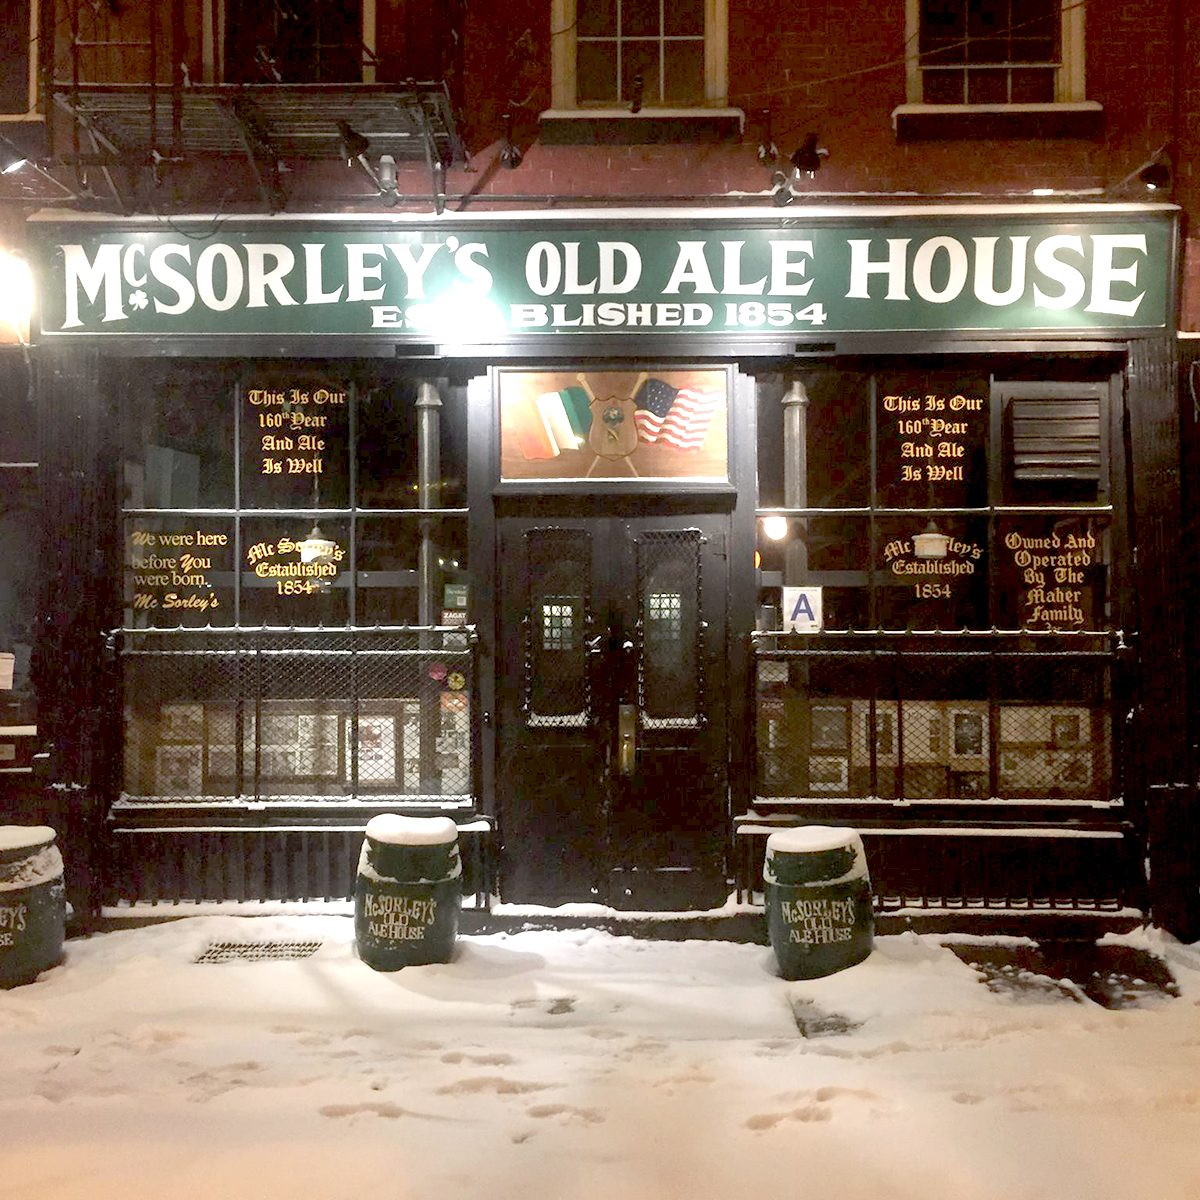 McSorley's Old Ale House, New York City